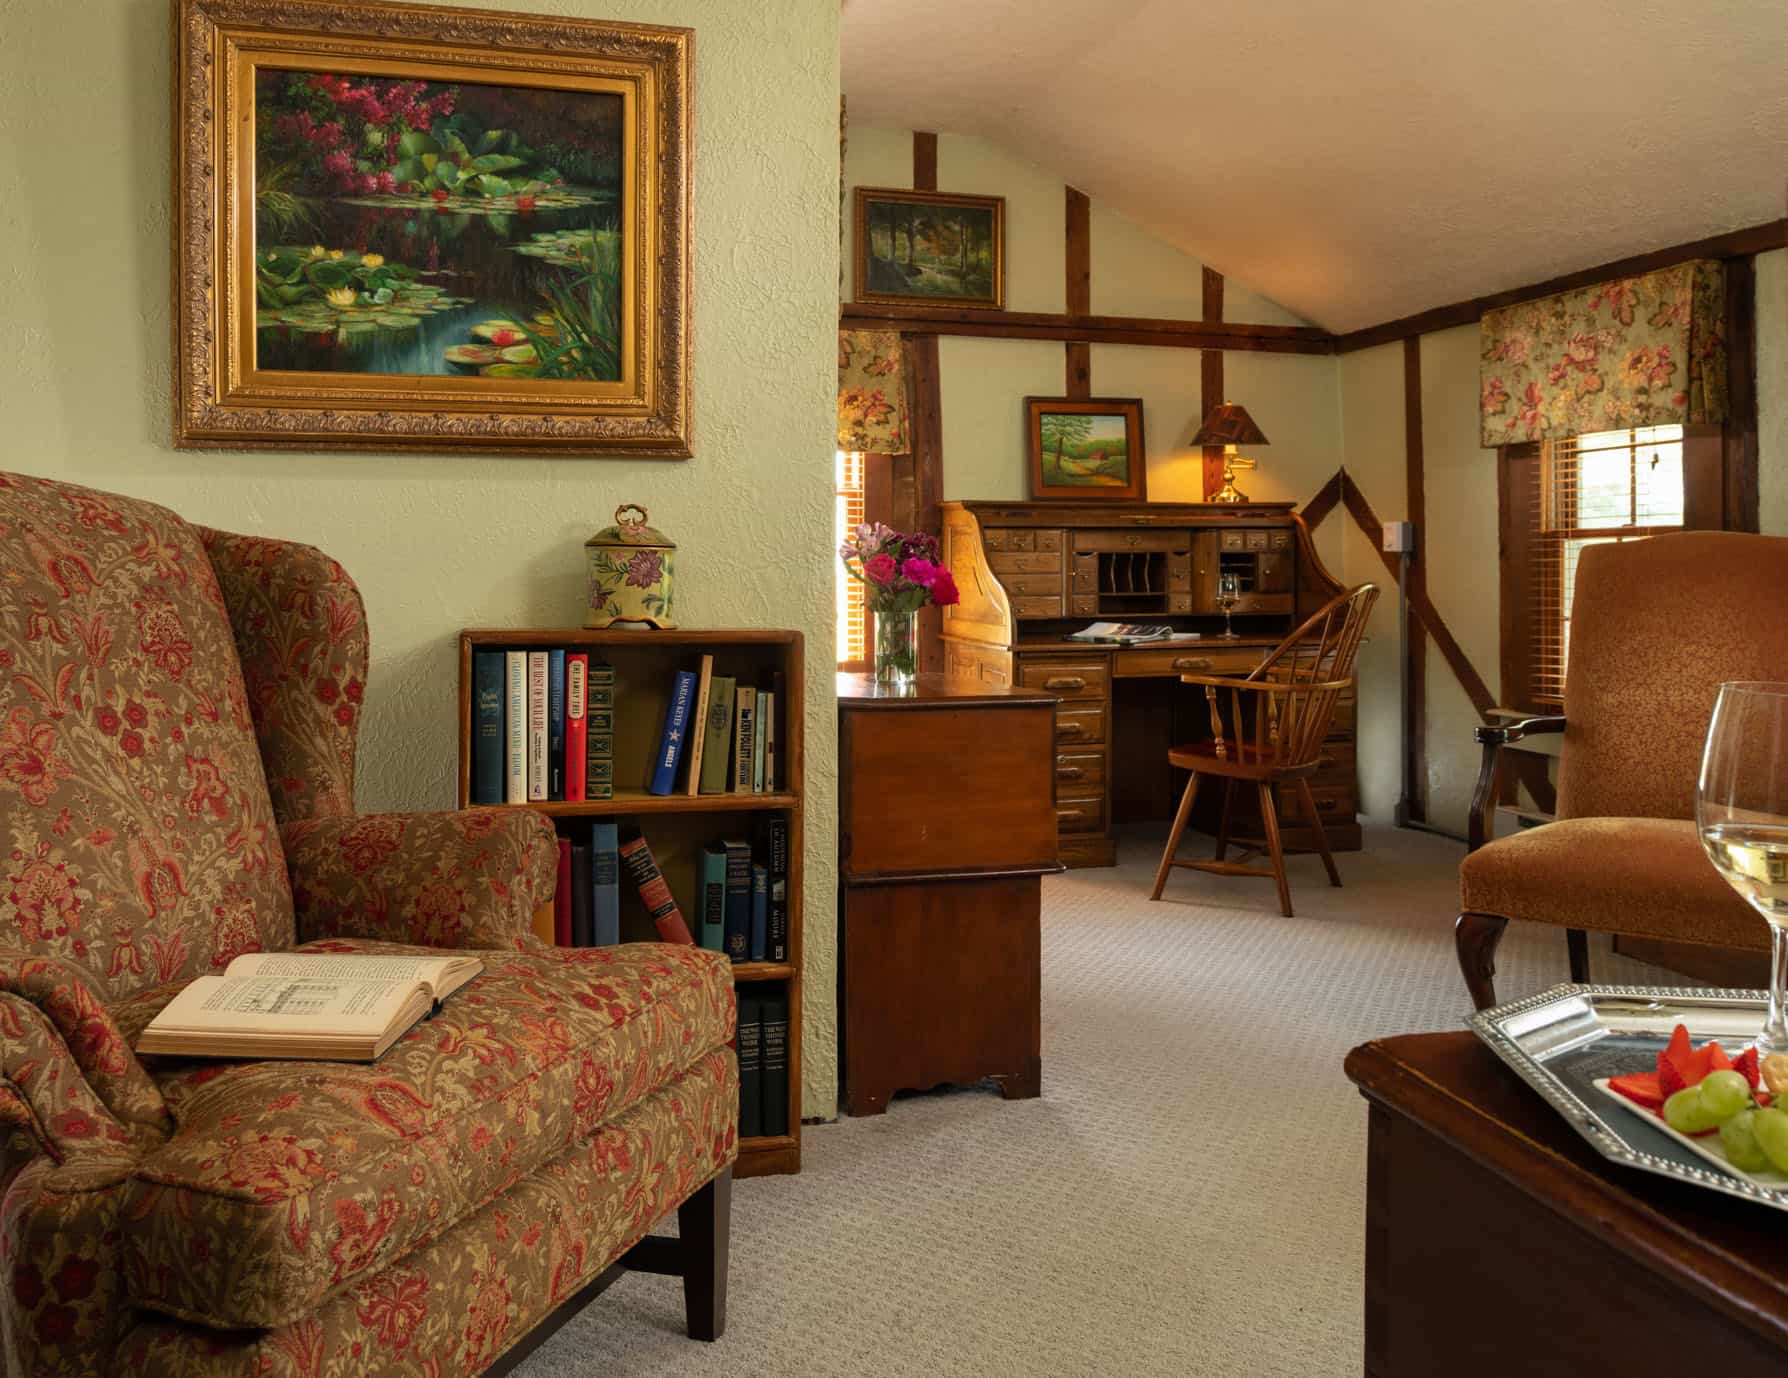 Seating area and small writing desk in a room with high ceilings